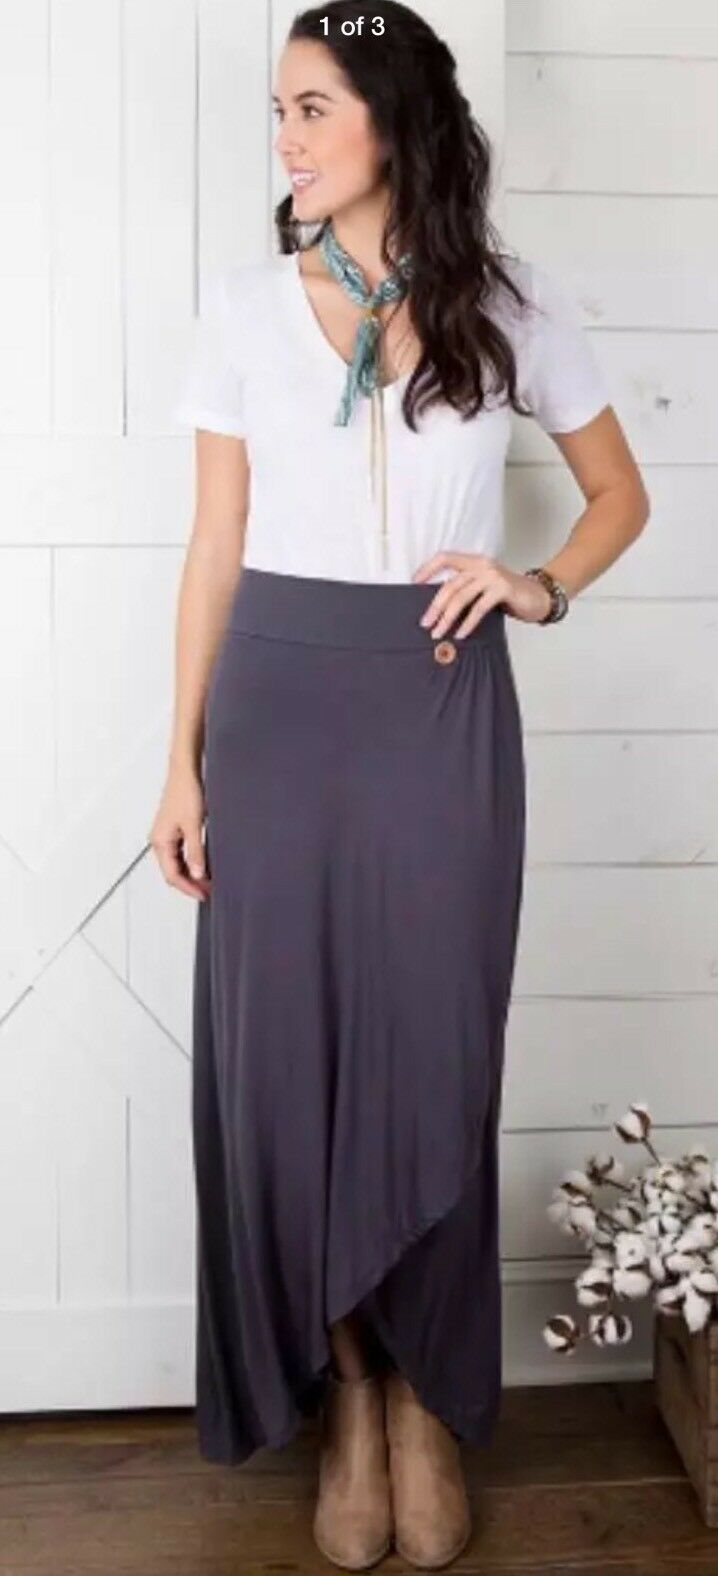 Matilda Jane Sweet And Simple Maxi Skirt Size Small Woman Joanna Gaines New